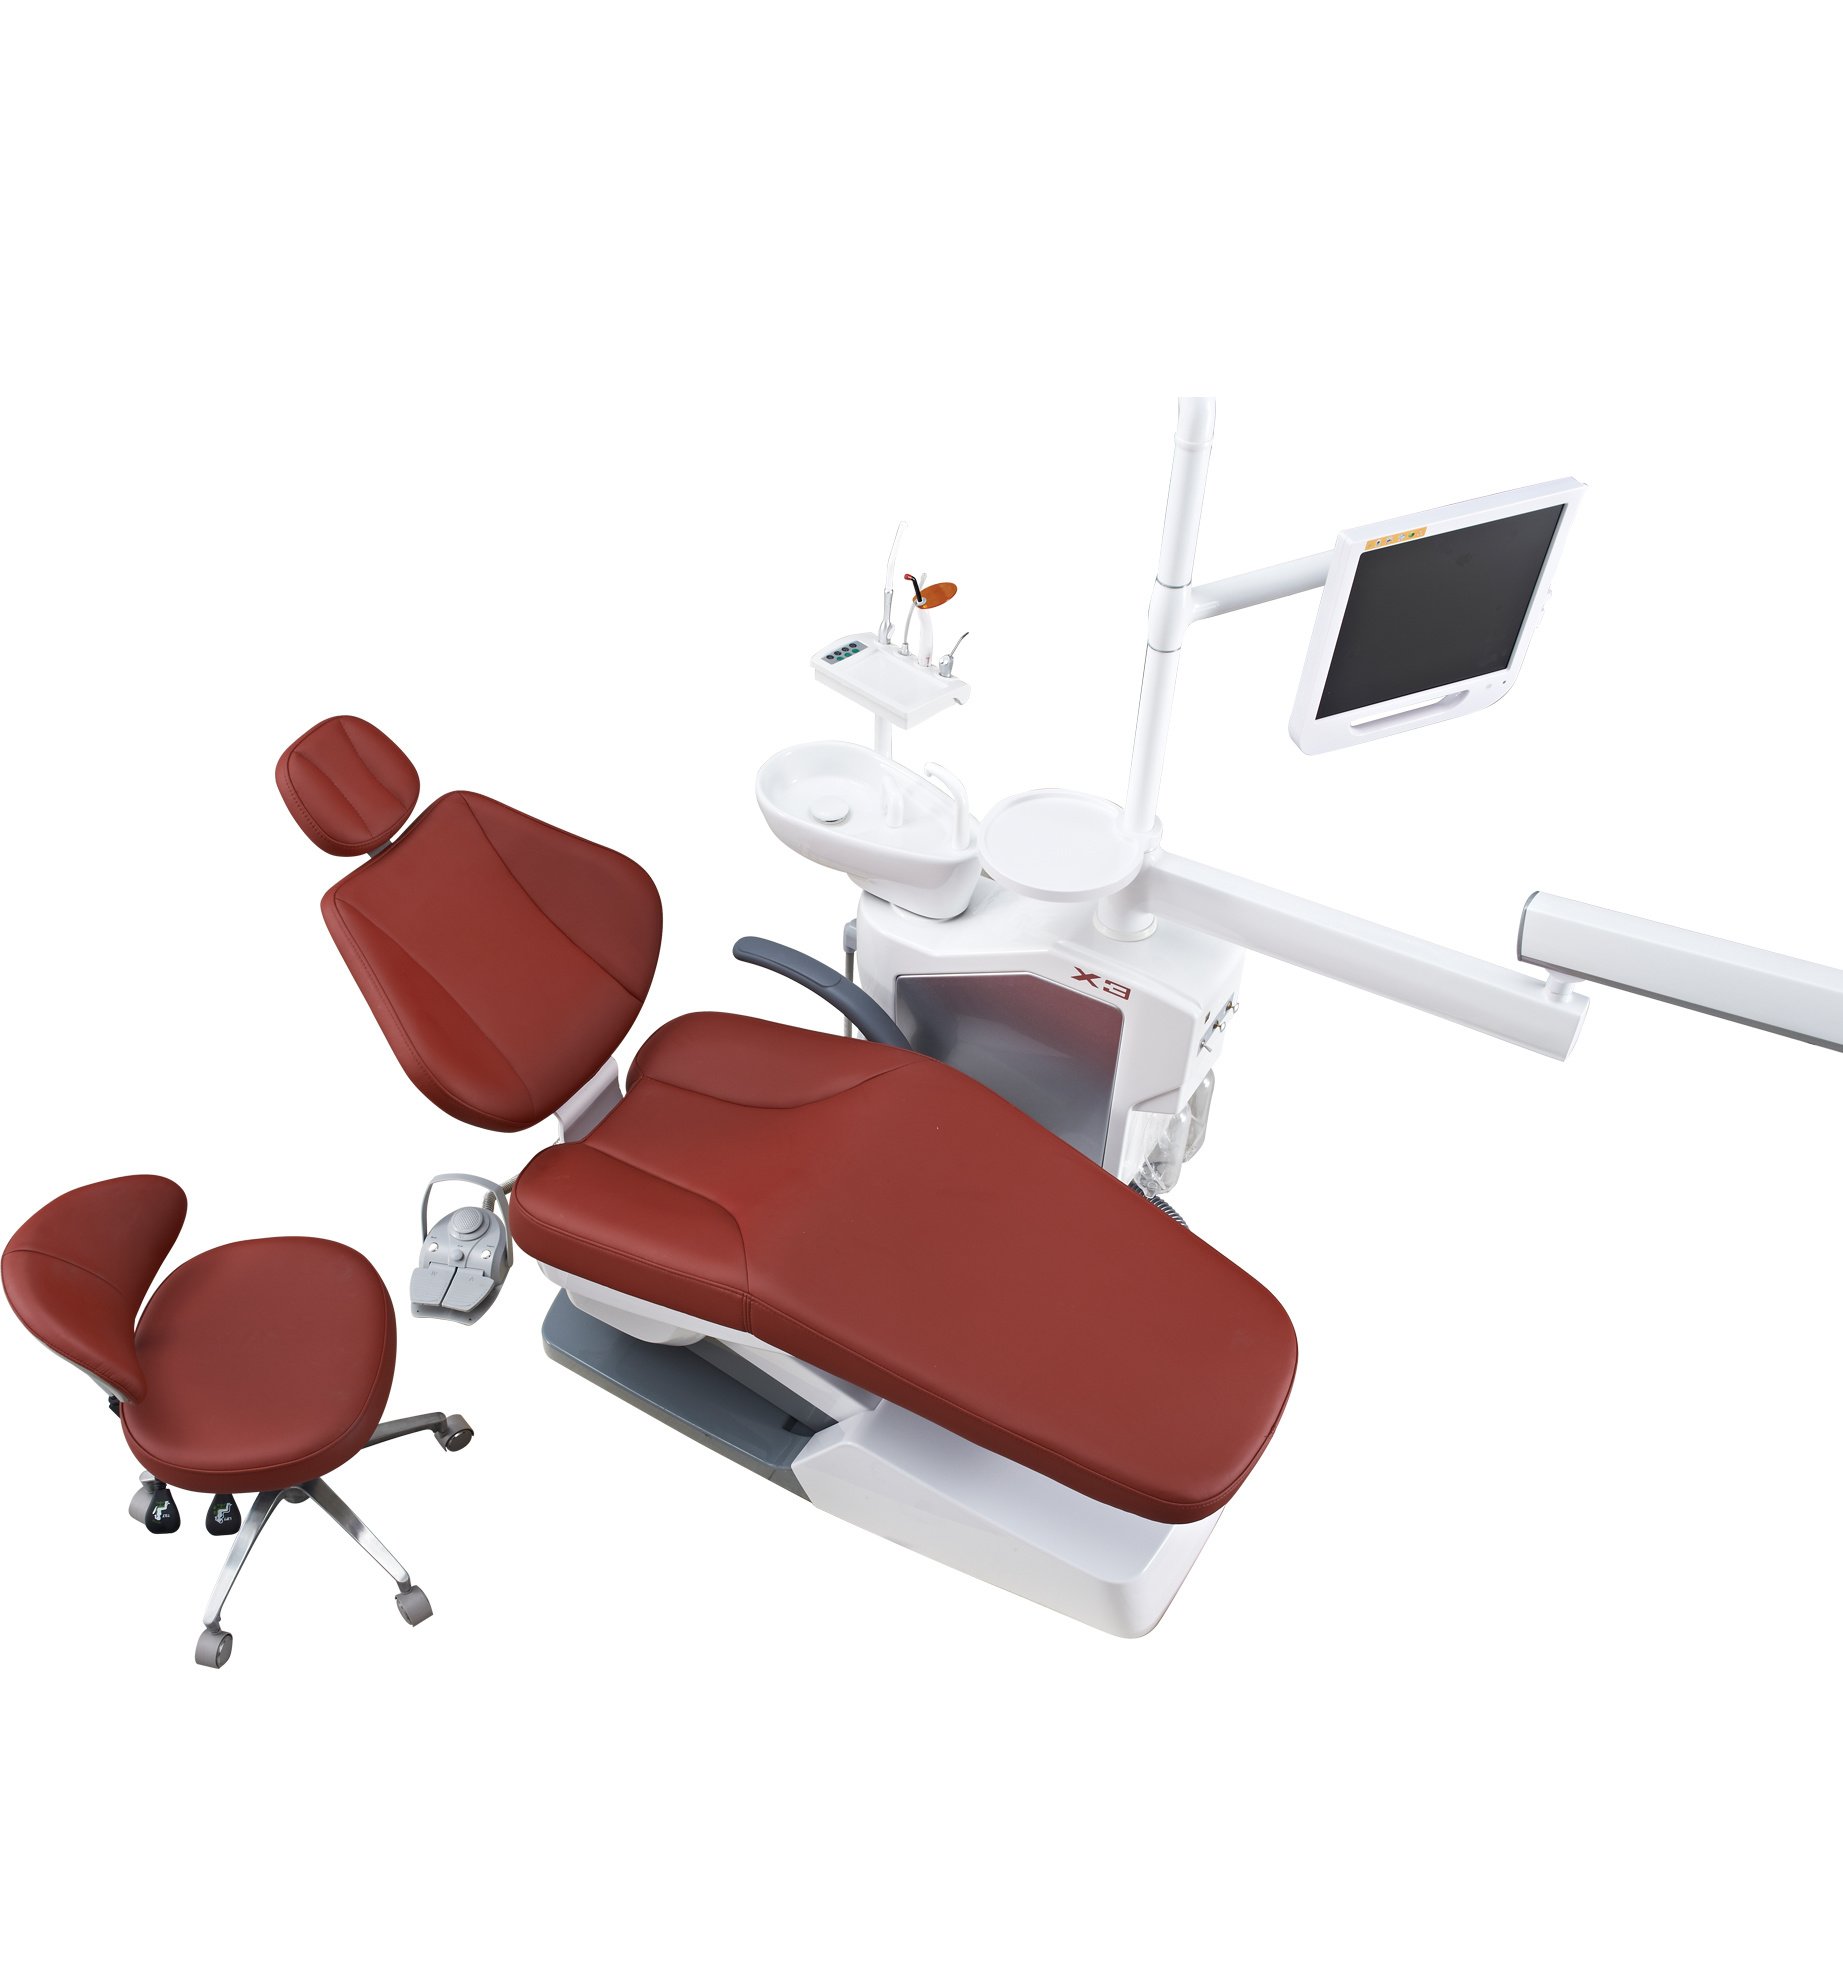 2017 Hot Sale Dental Unit with Cabinet Can Move